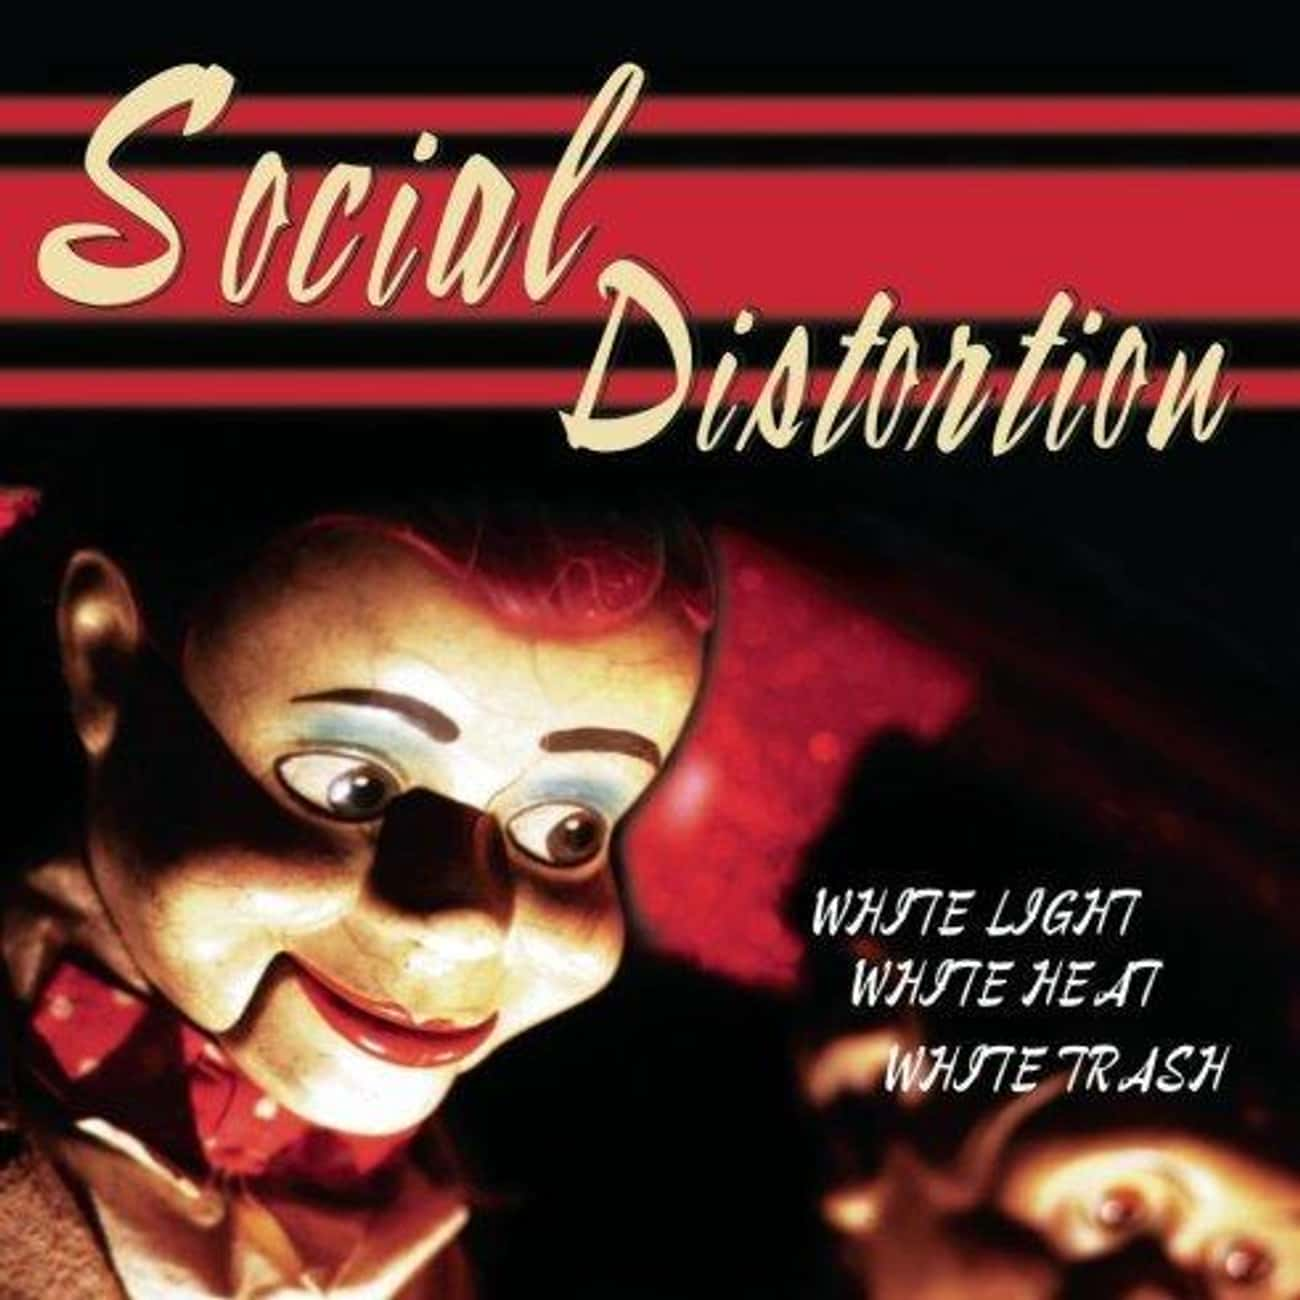 White Light, White Heat, White is listed (or ranked) 3 on the list The Best Social Distortion Albums of All Time